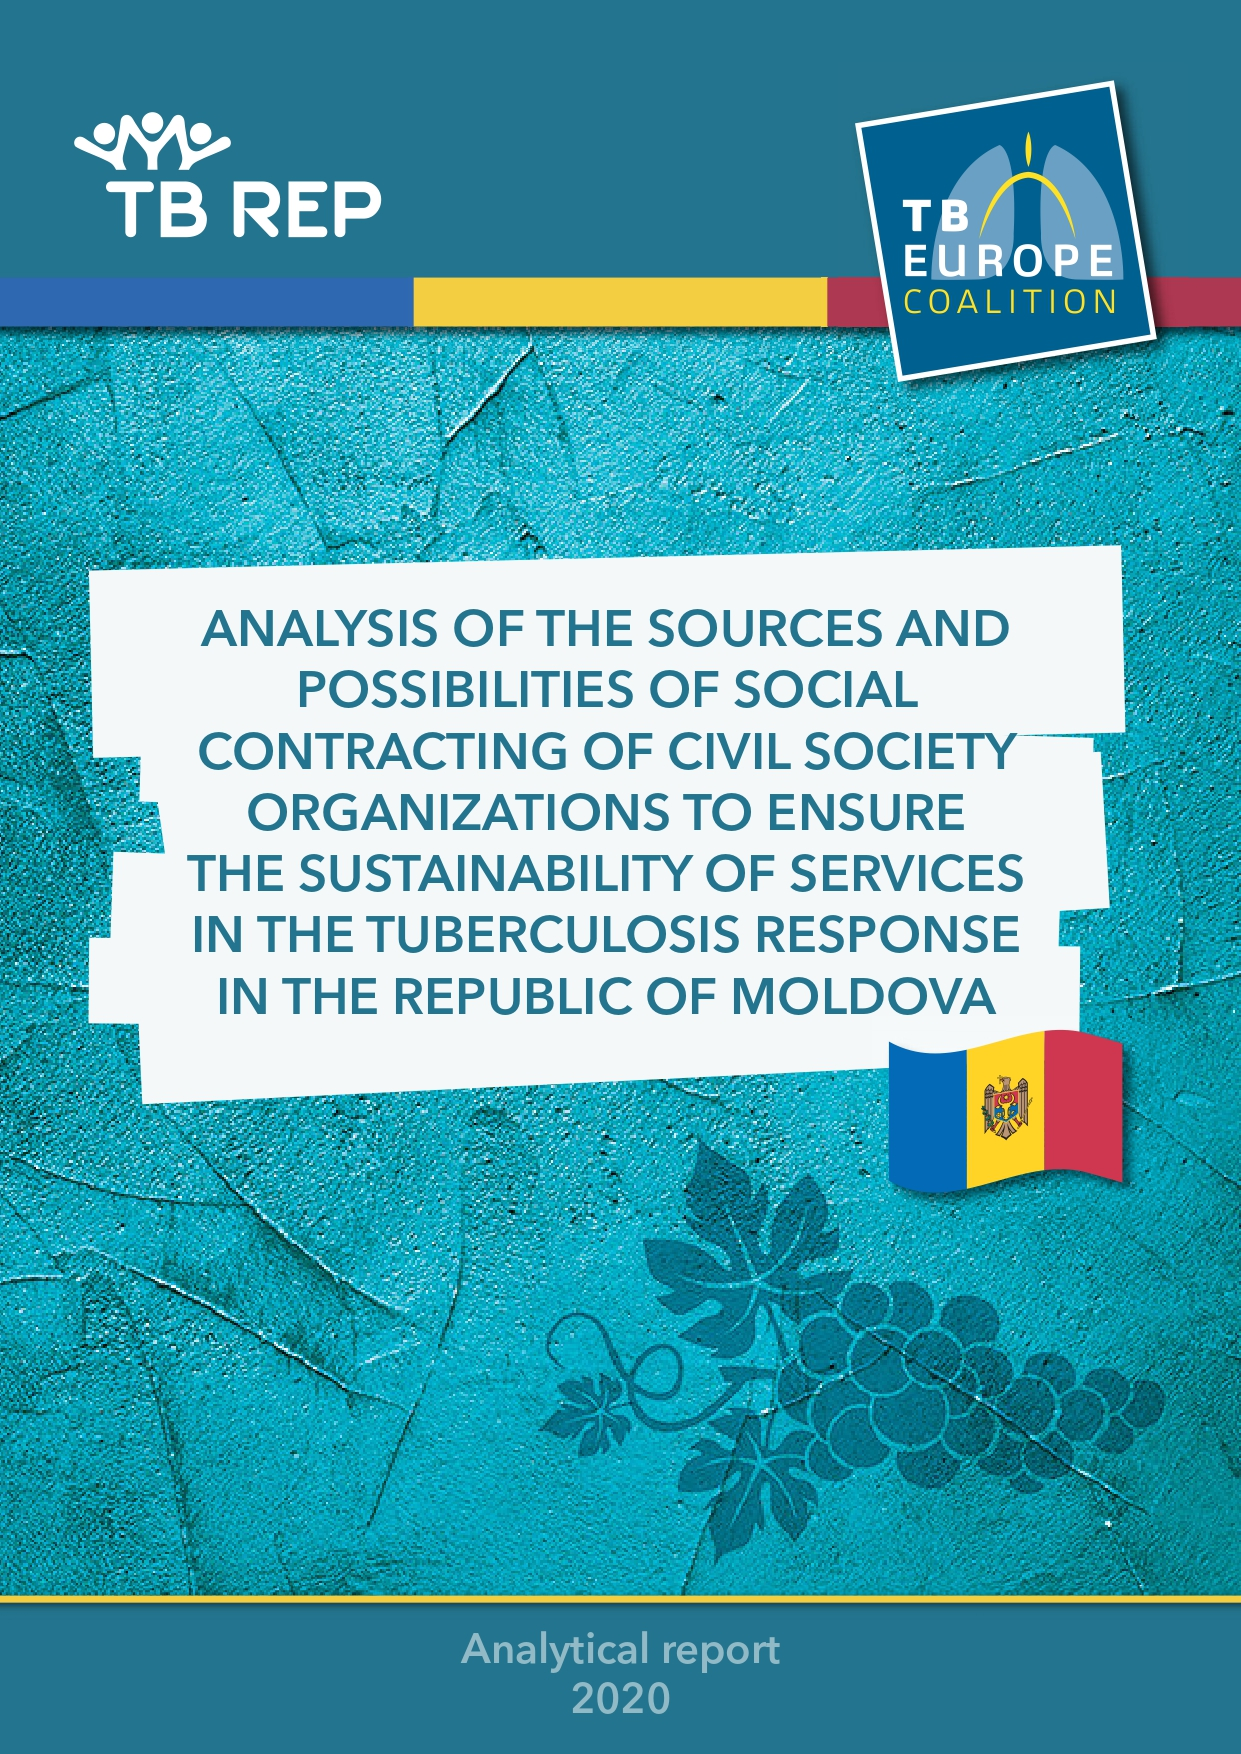 Analysis of possibilities for social contracting for TB Response in Moldova